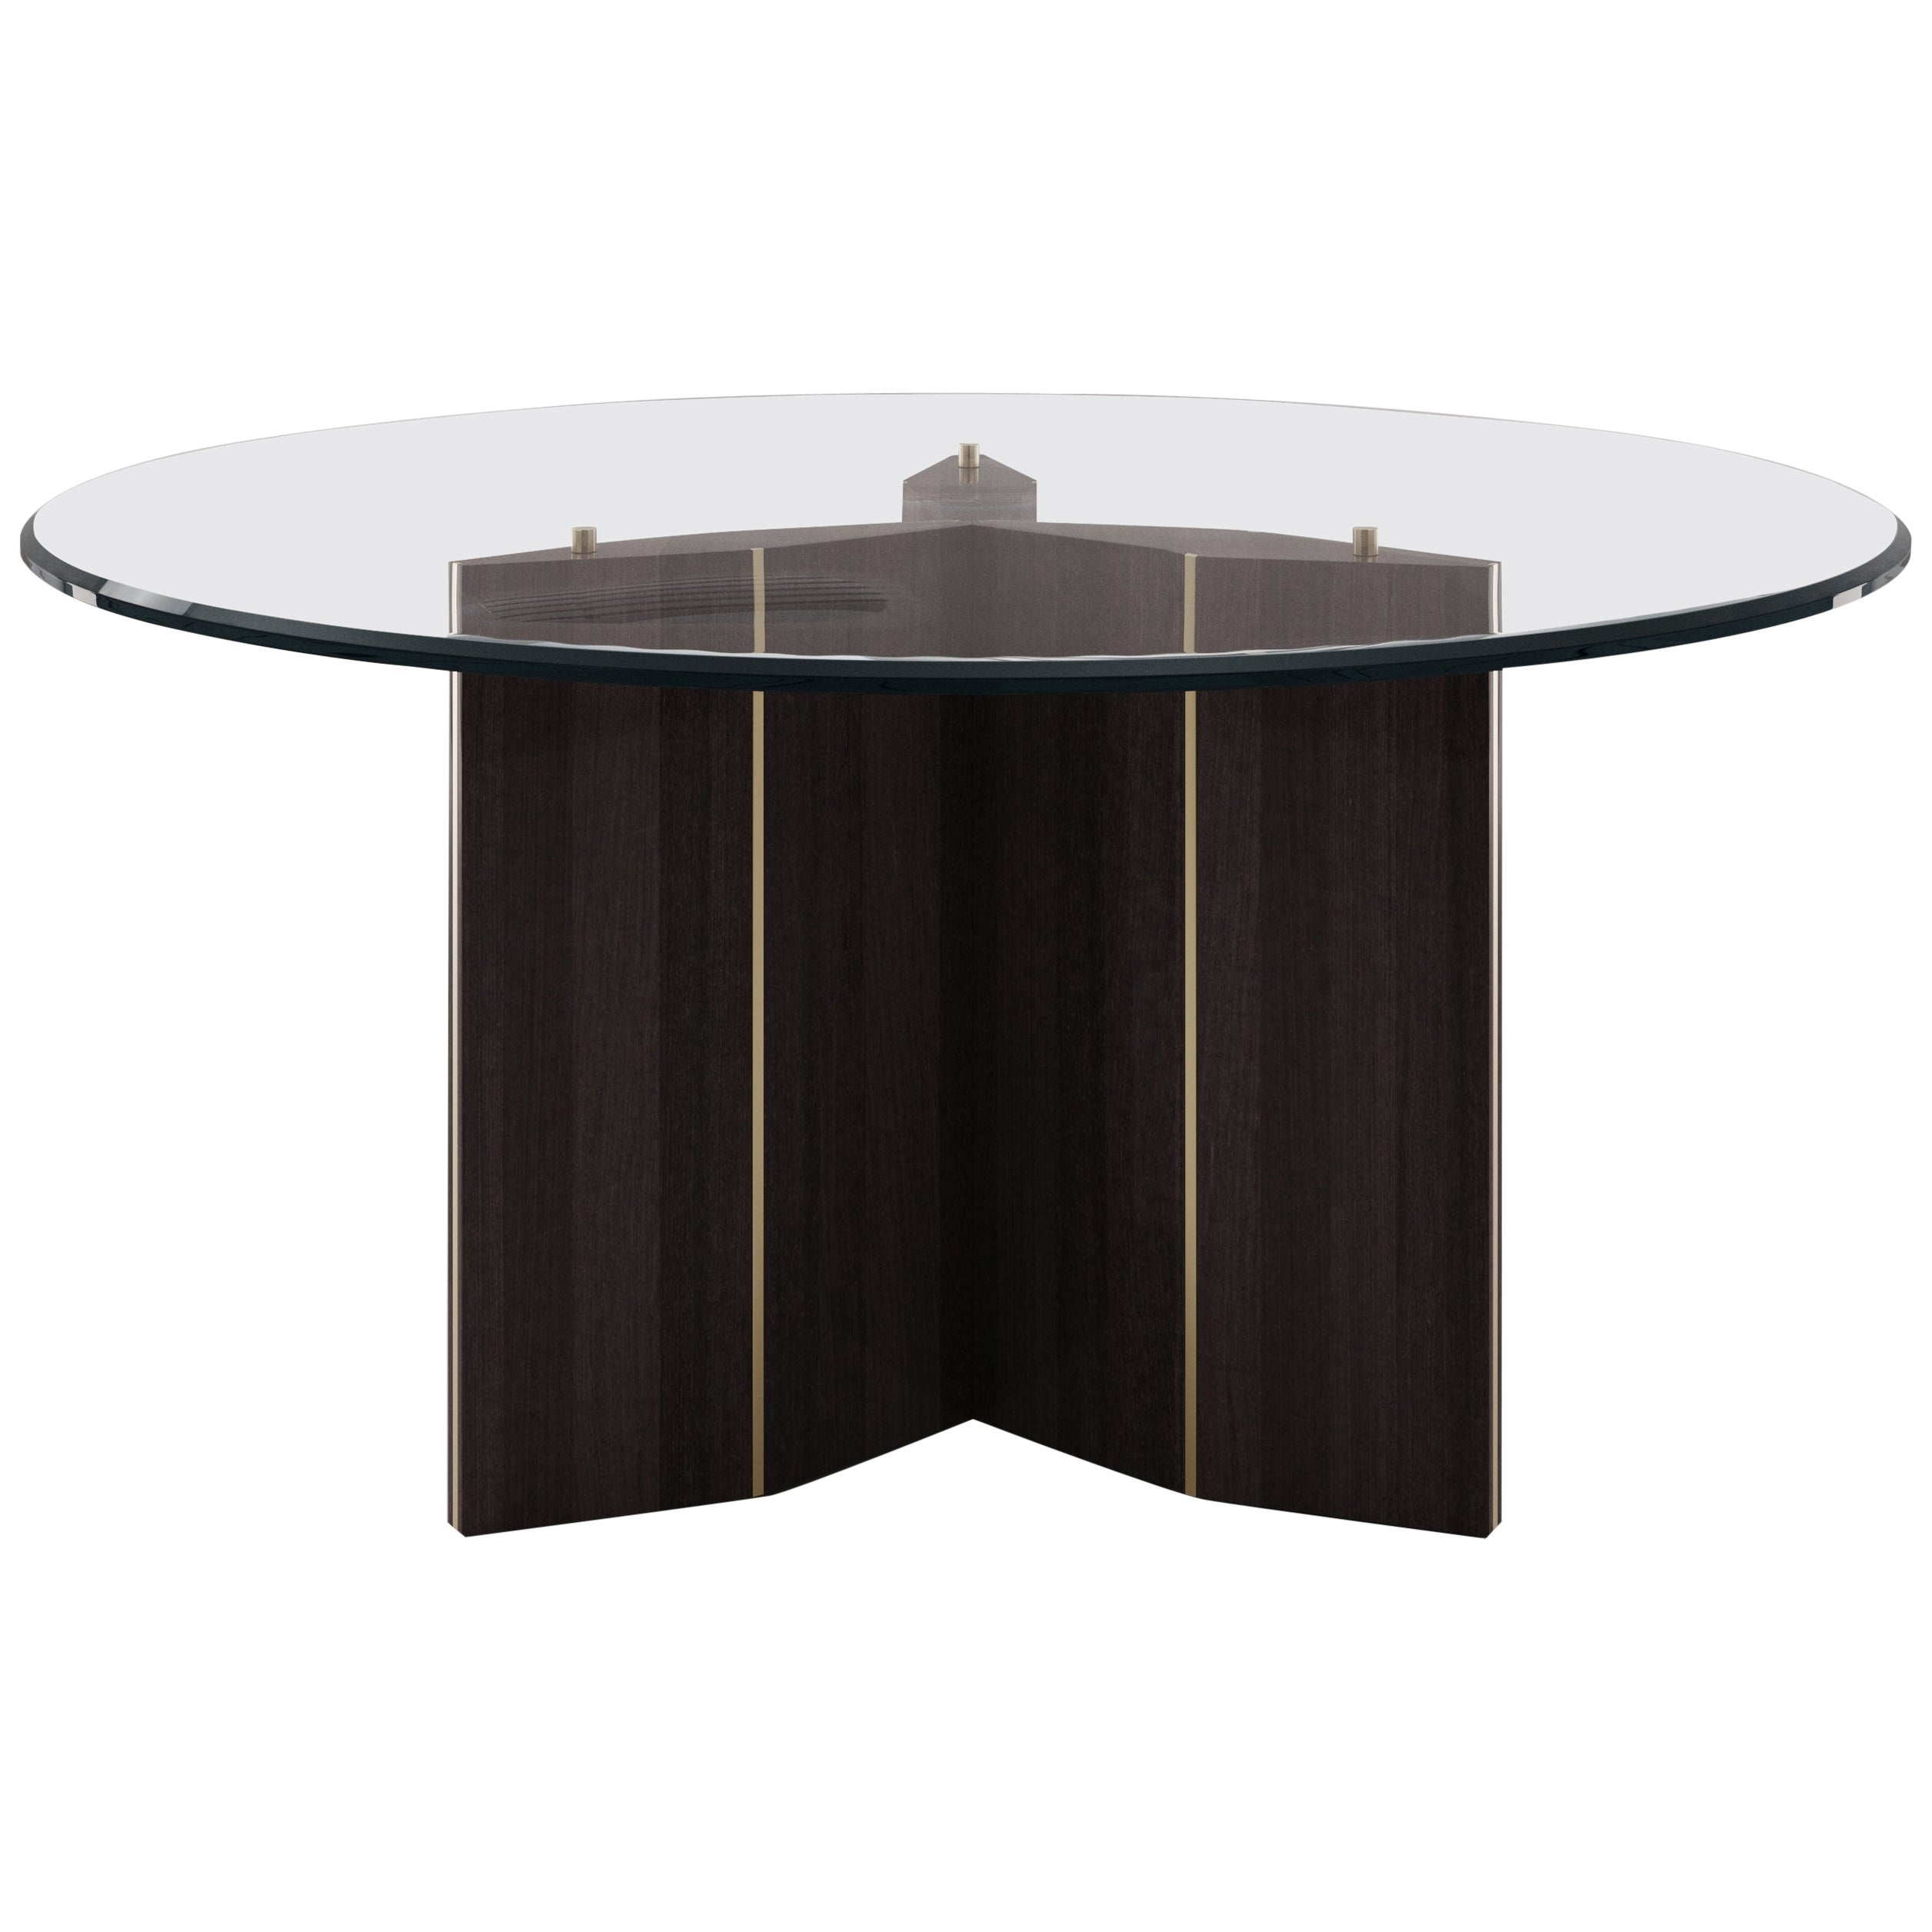 Lorca Dining Table with Tempered Glass Top and Brushed Brass Trims